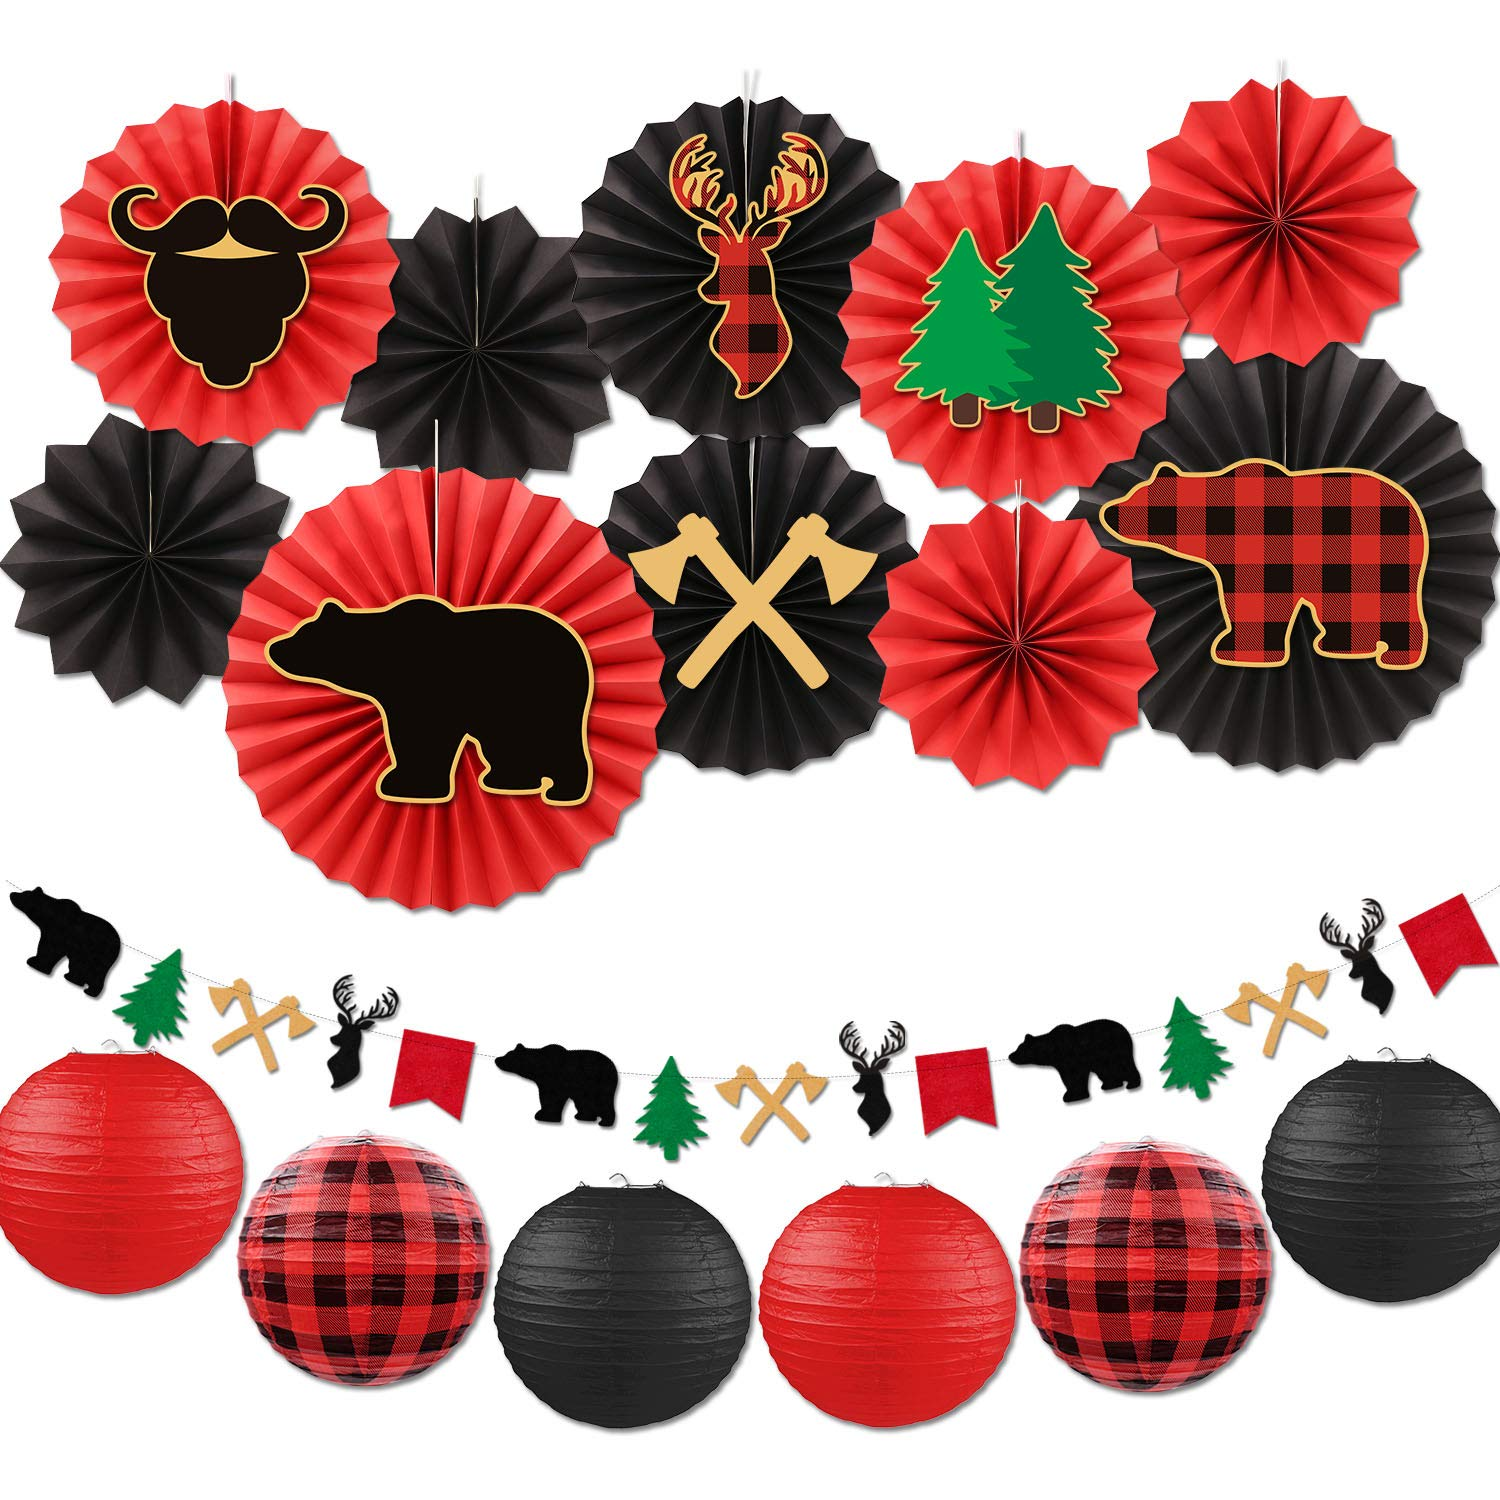 Buffalo Plaid Paper Fan Decorations Kit Lumberjack Baby Shower Hanging Paper Fans Lanterns Garland Red Black Birthday Rustic Christmas Woodland Adventure Party Supplies